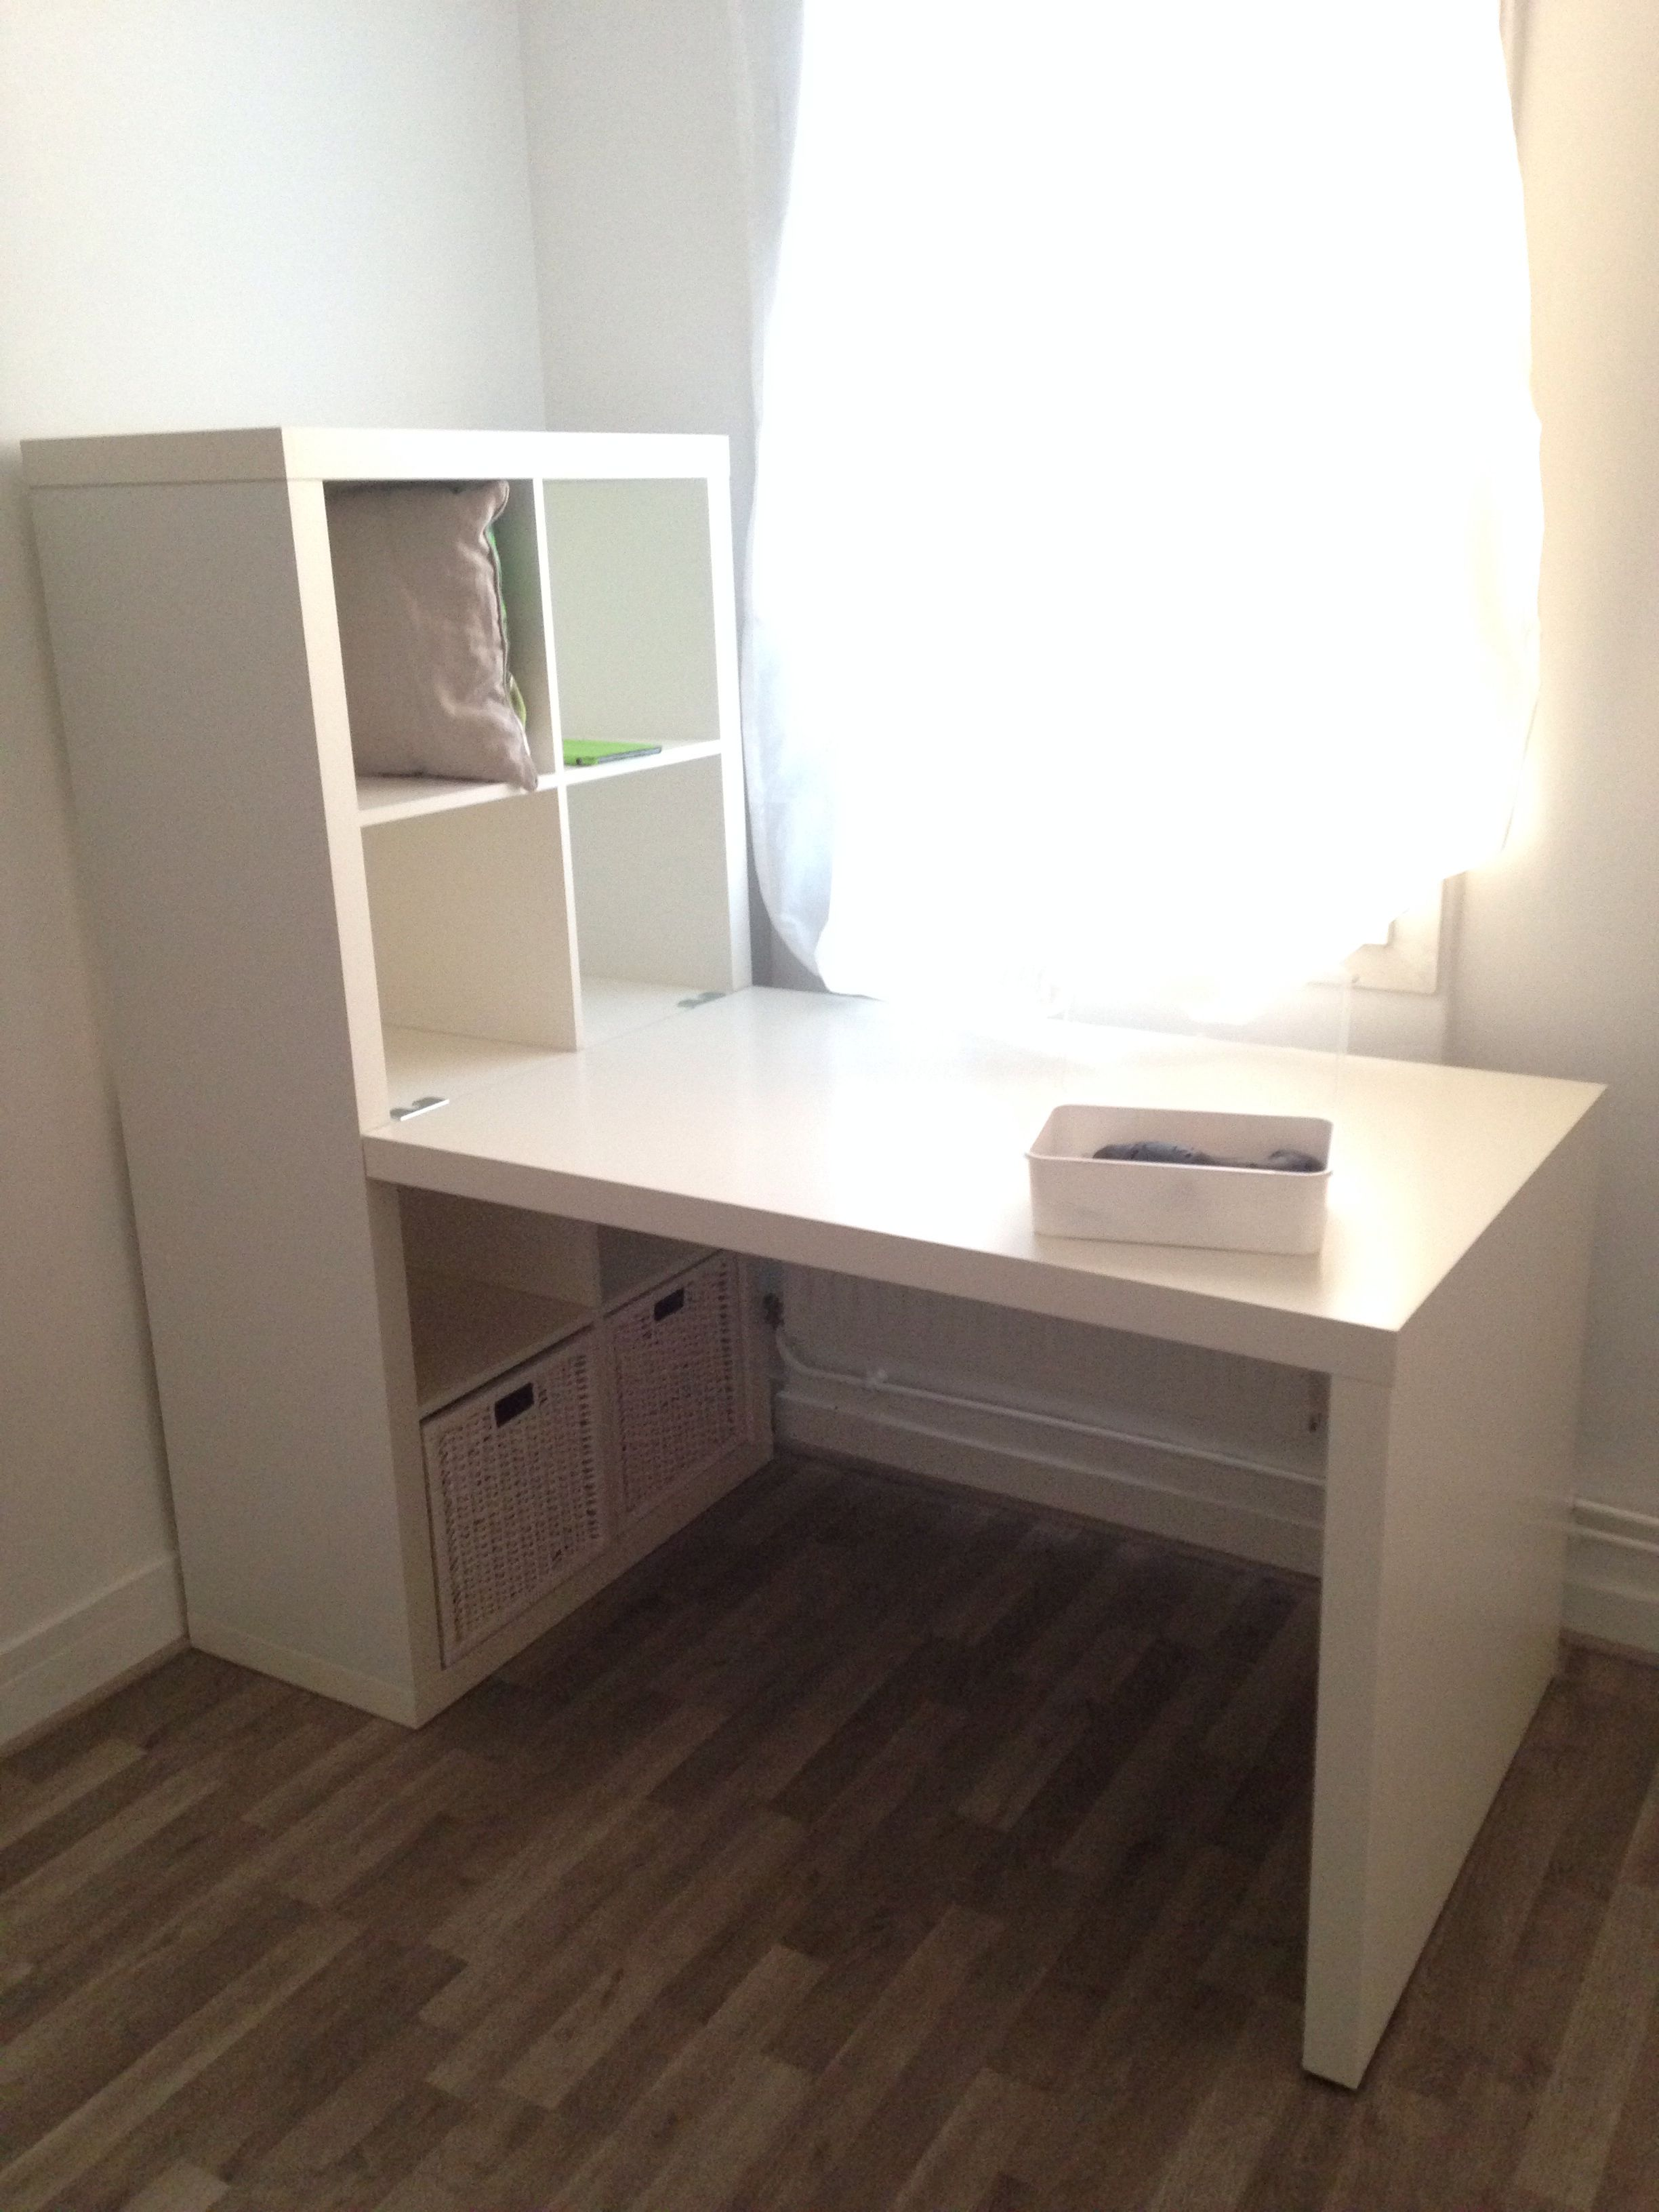 Ikea expedit desk and bookcase cube display - Ikea Expedit Desk And Bookcase Cube Display 36